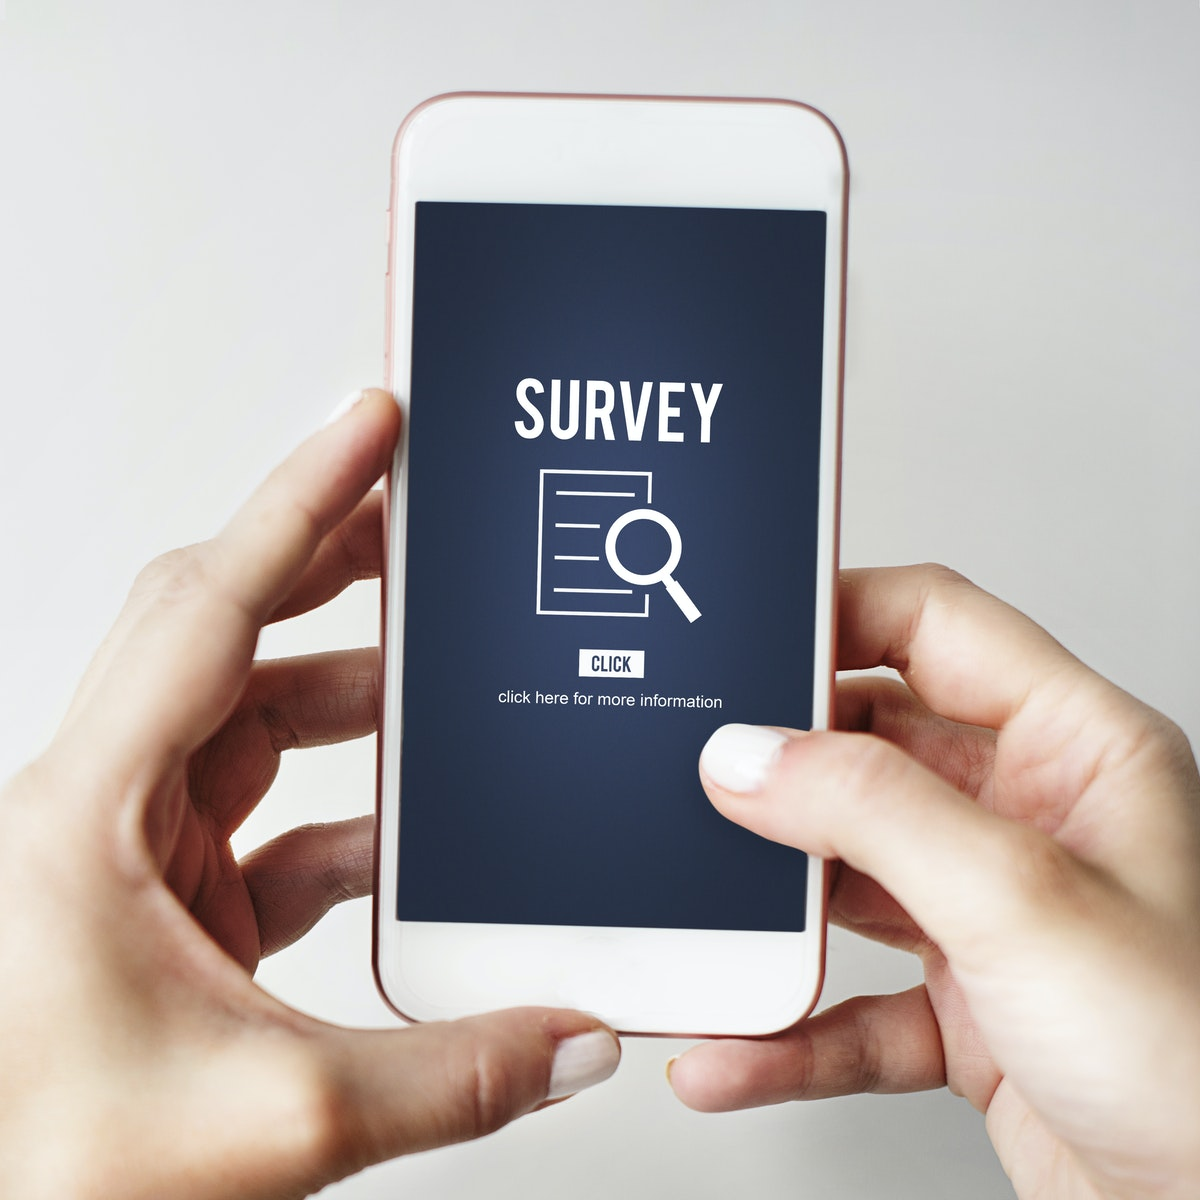 Hands holding mobile phone with depiction of a survey icon link